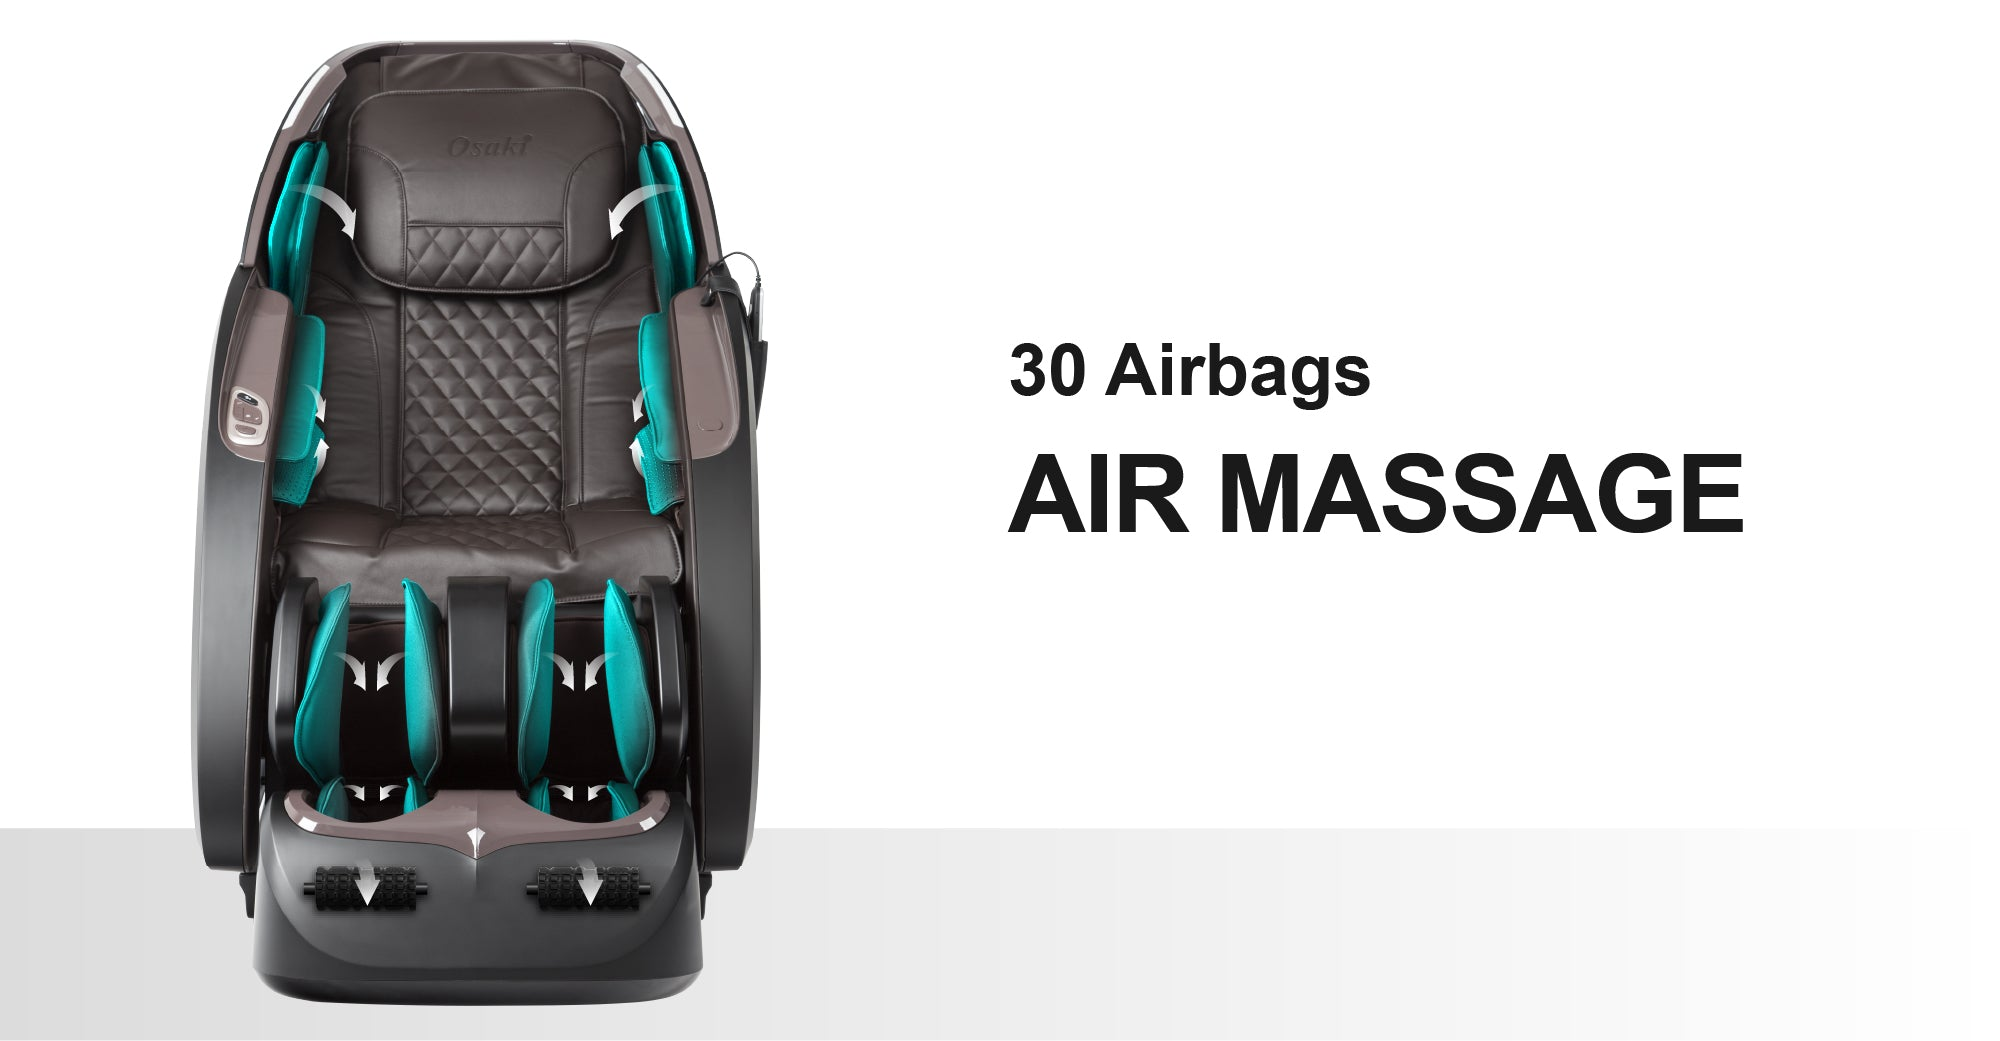 30 Airbags Air Massage